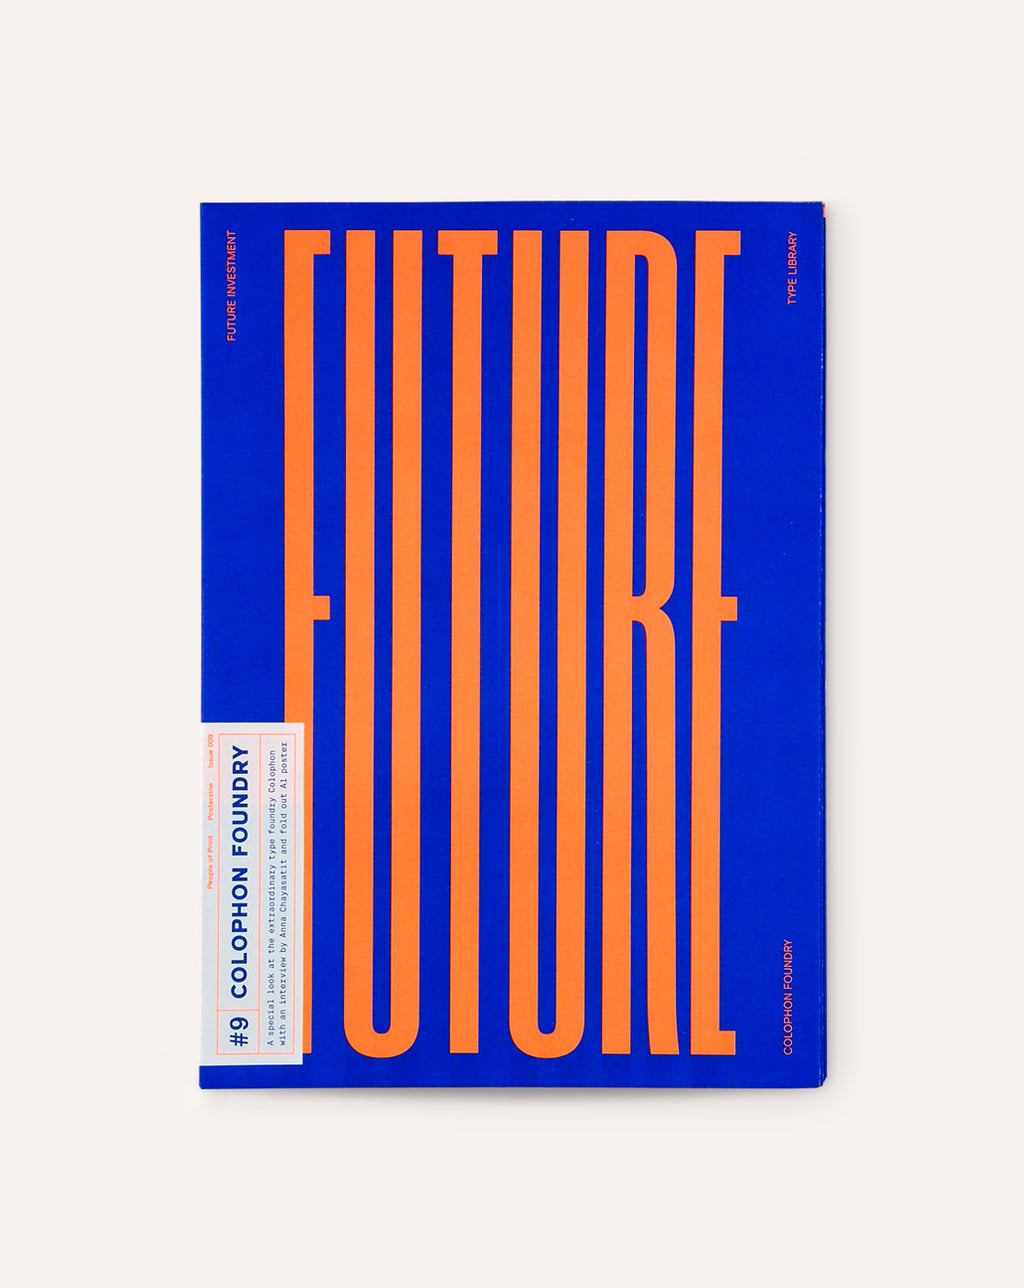 Posterzine™ Issue 9 | Colophon Foundry